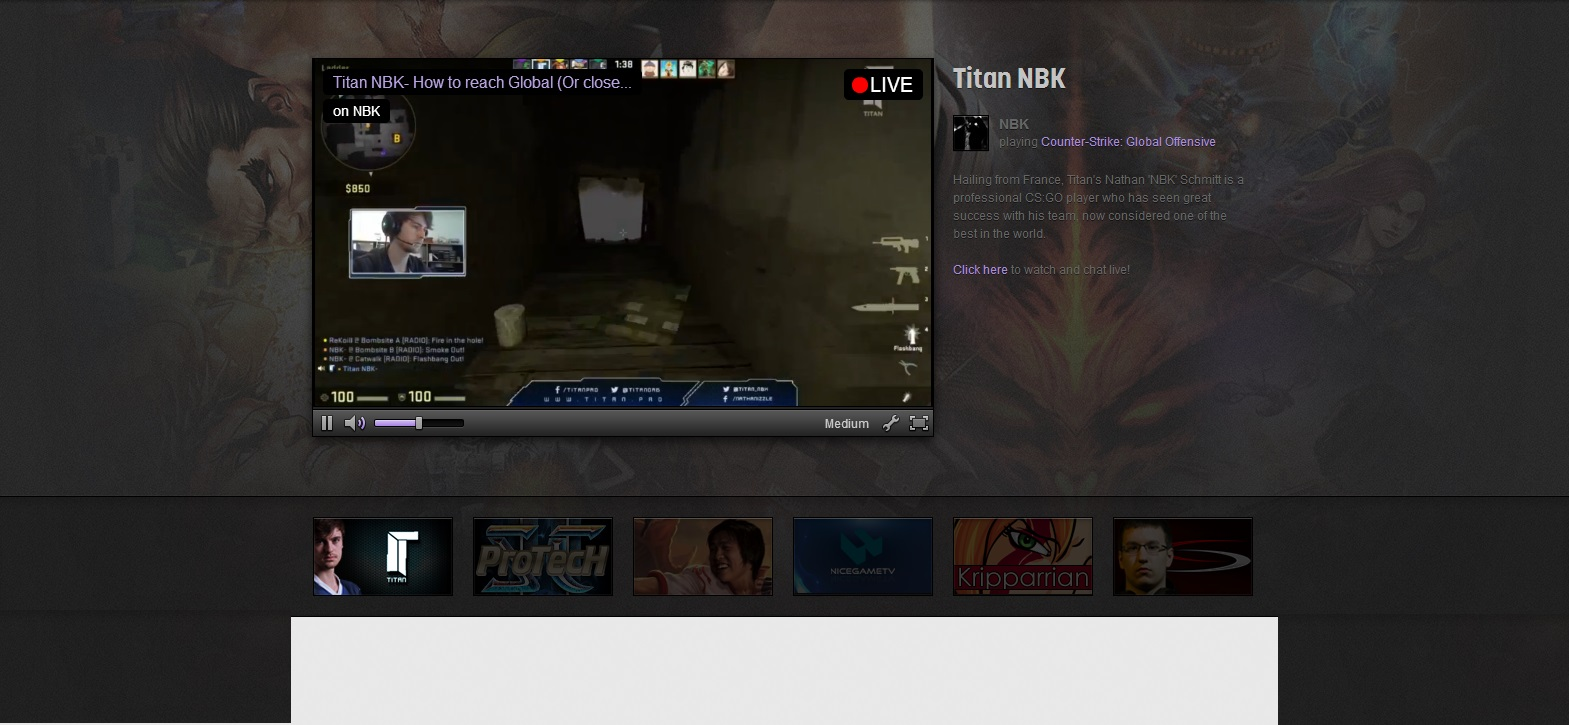 YouTube may buy videogame streaming service Twitch.tv